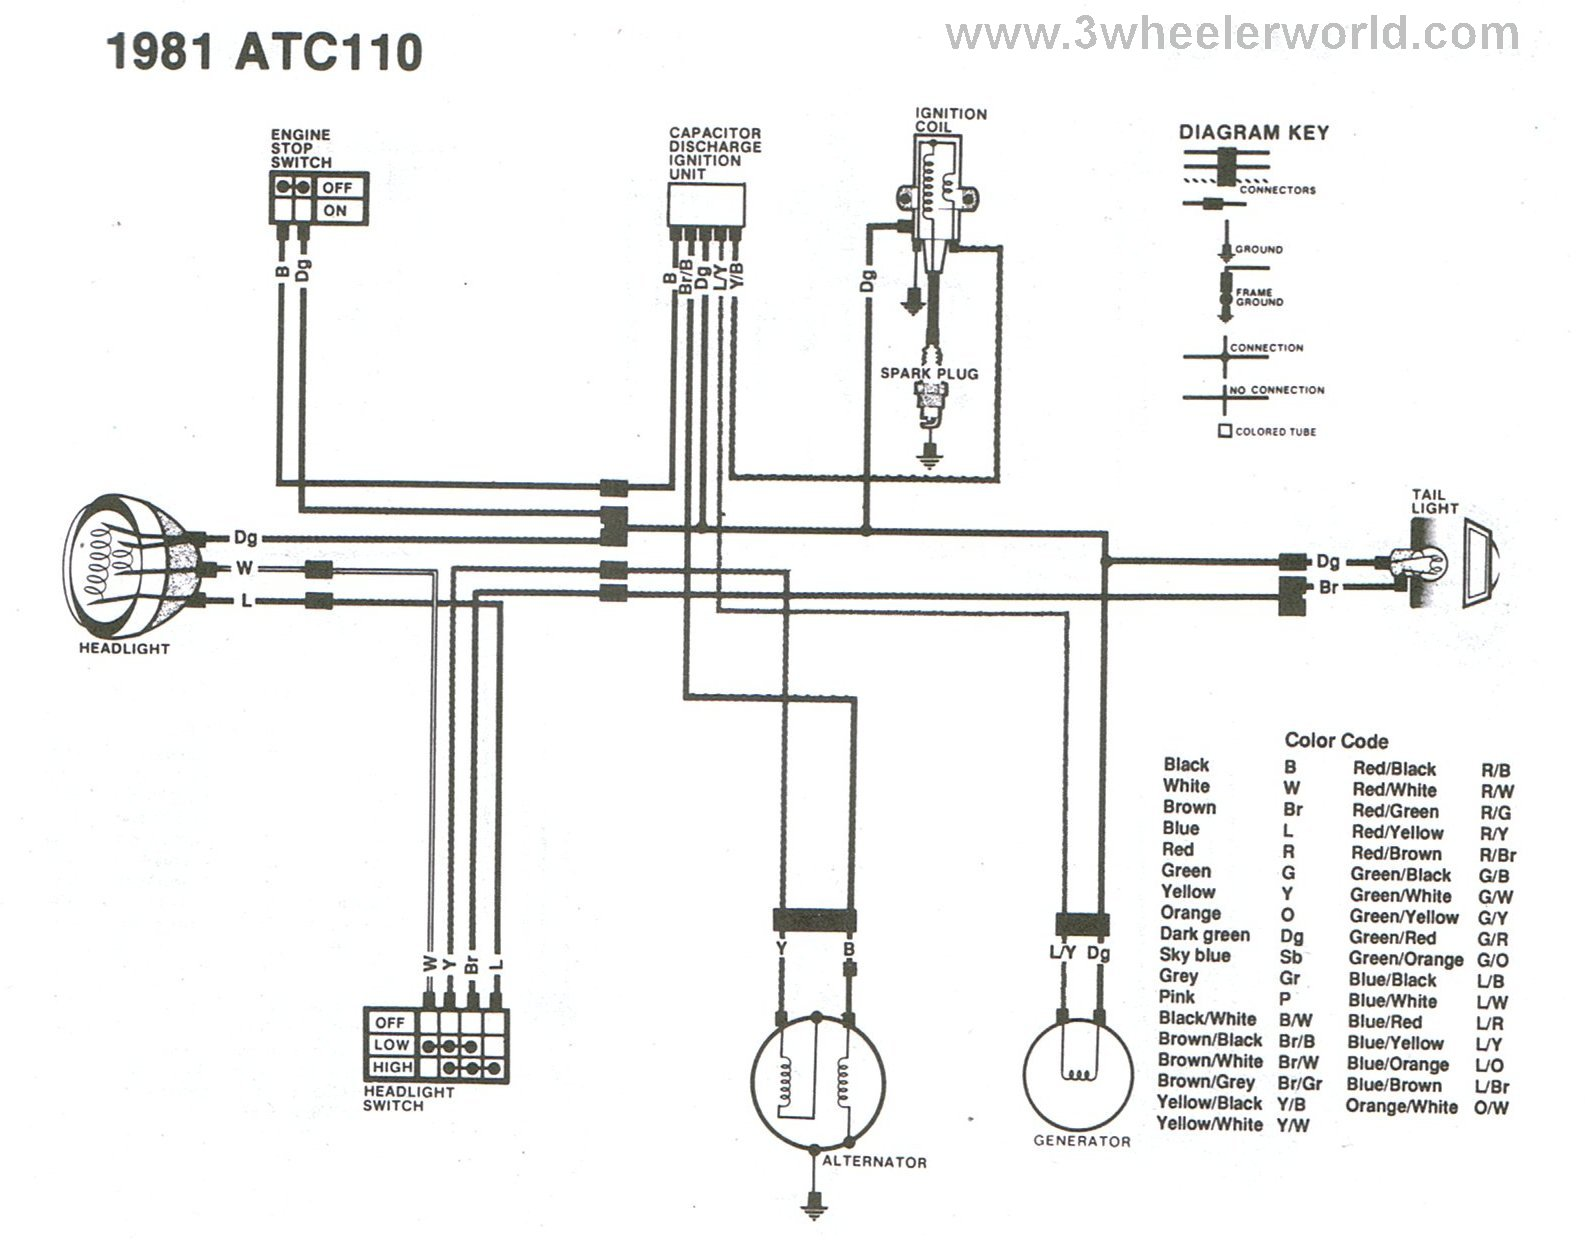 ATC110x81 1983 honda atc 70 wiring diagram wiring diagram and schematic design  at crackthecode.co